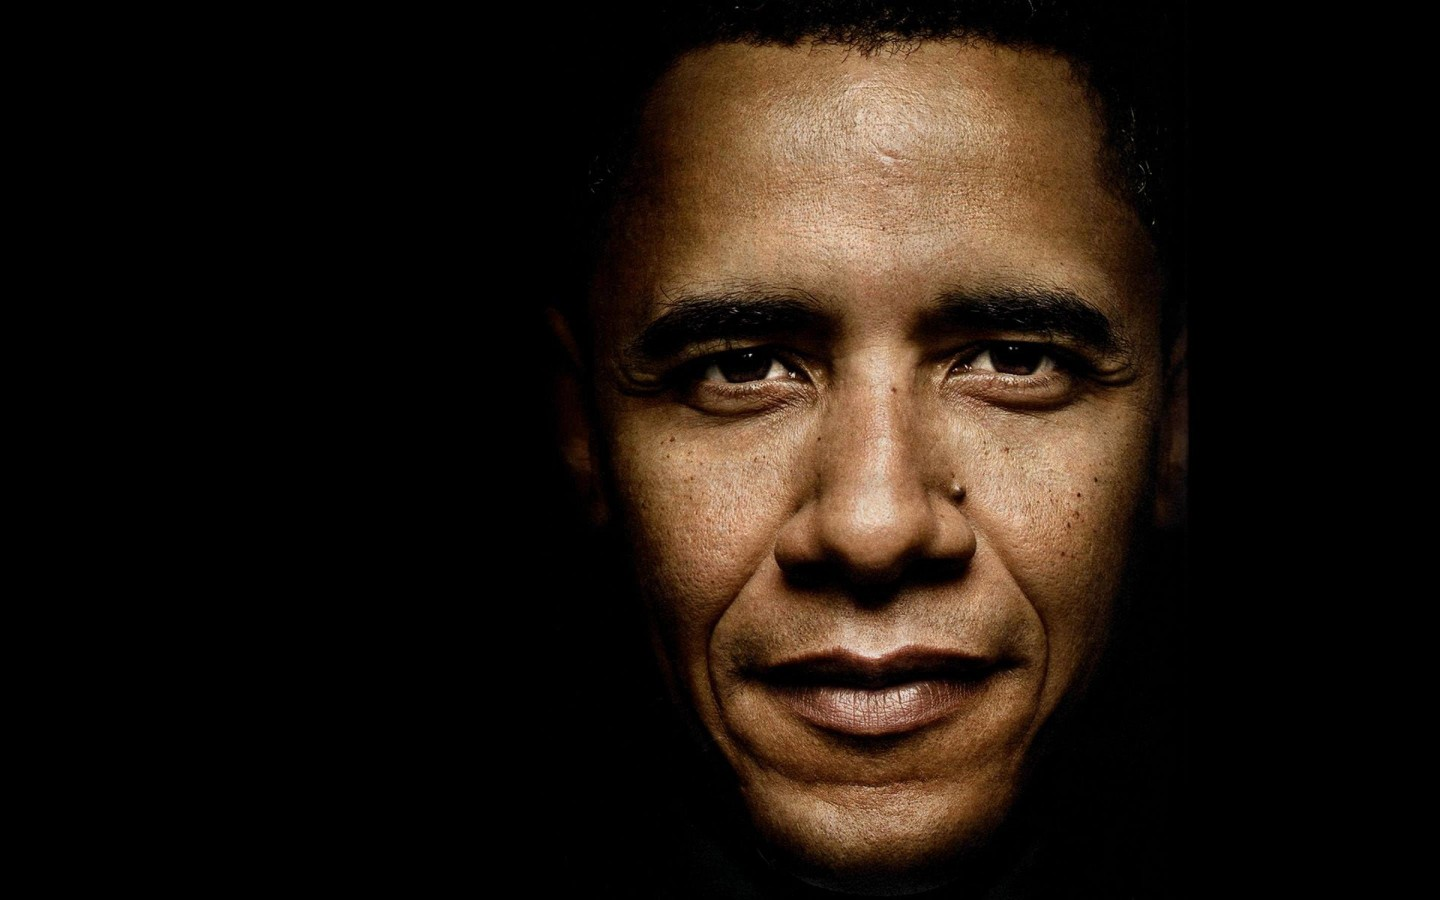 President Barack Obama Portrait Wallpaper for Desktop 1440x900